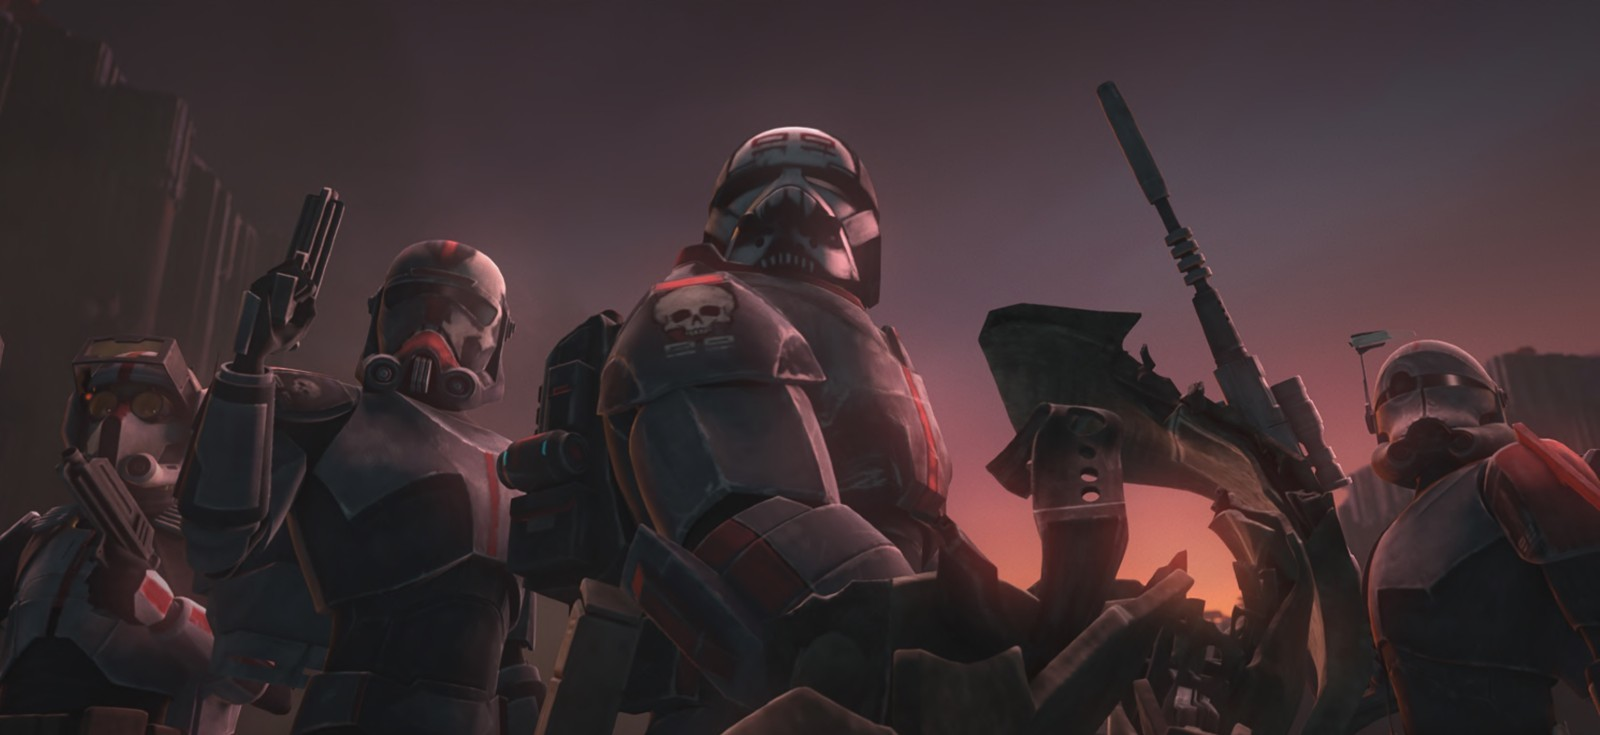 Star Wars: The Clone Wars Episode 7.01 Review